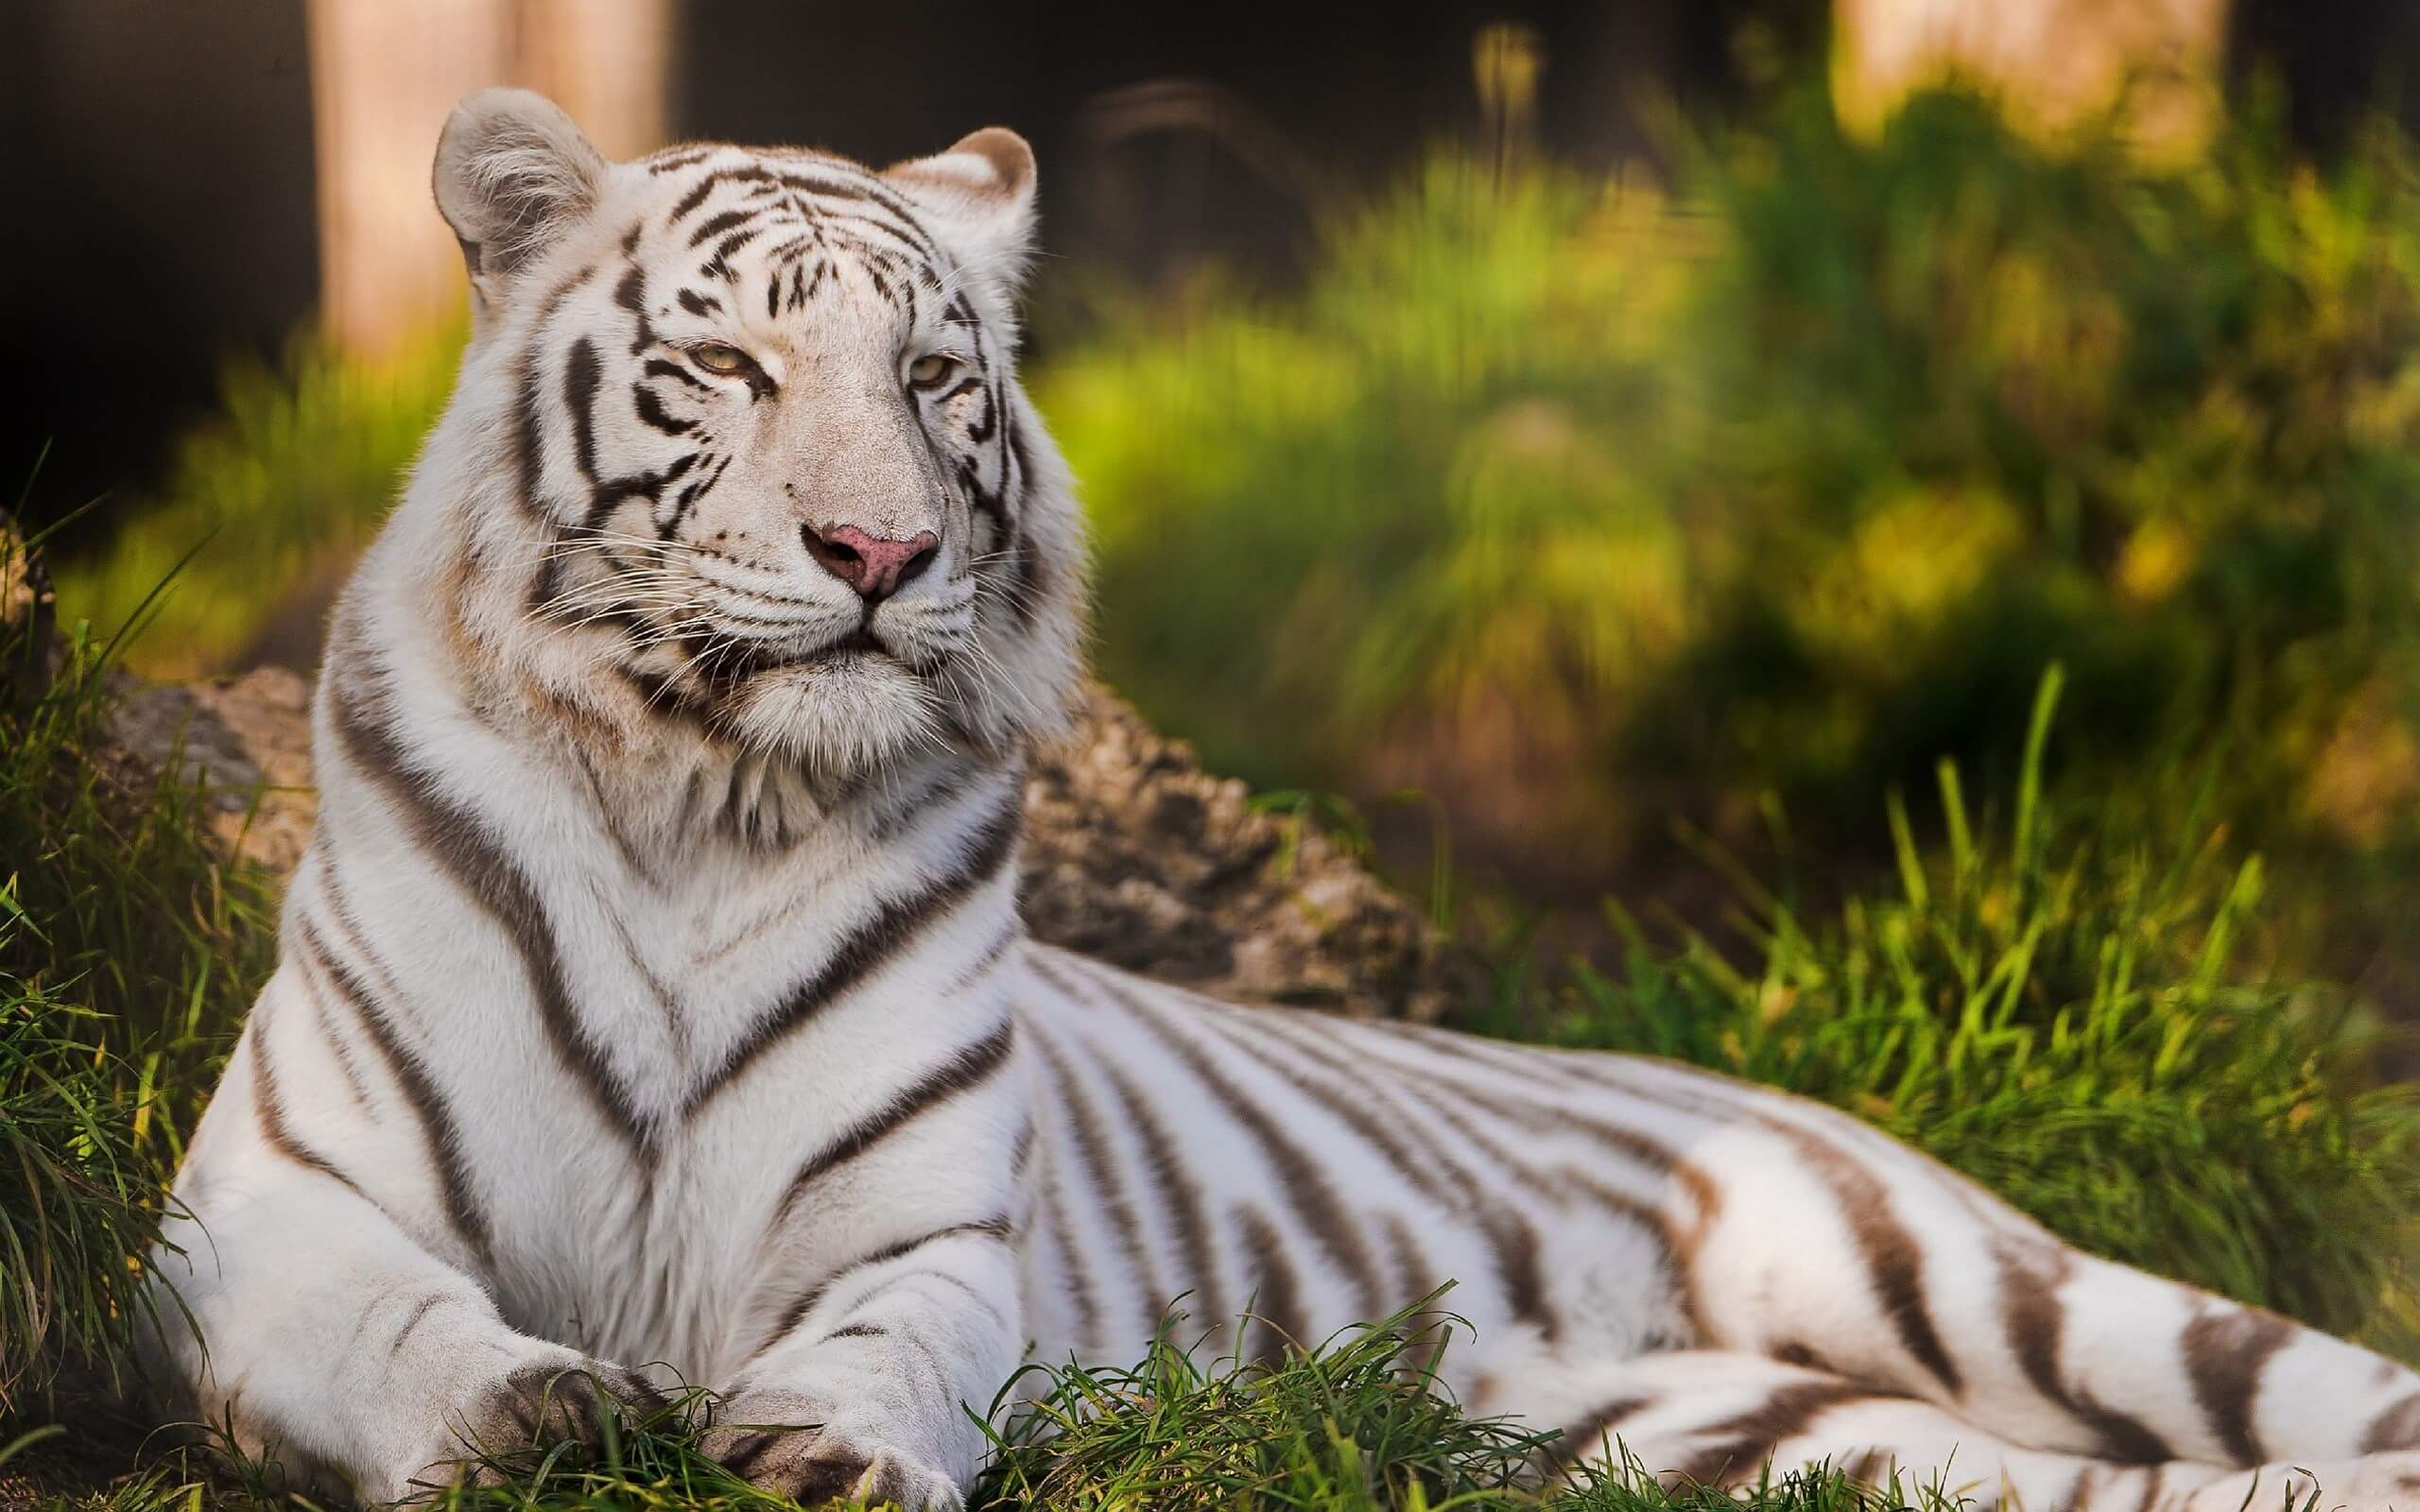 White Tiger Wallpapers for Computer